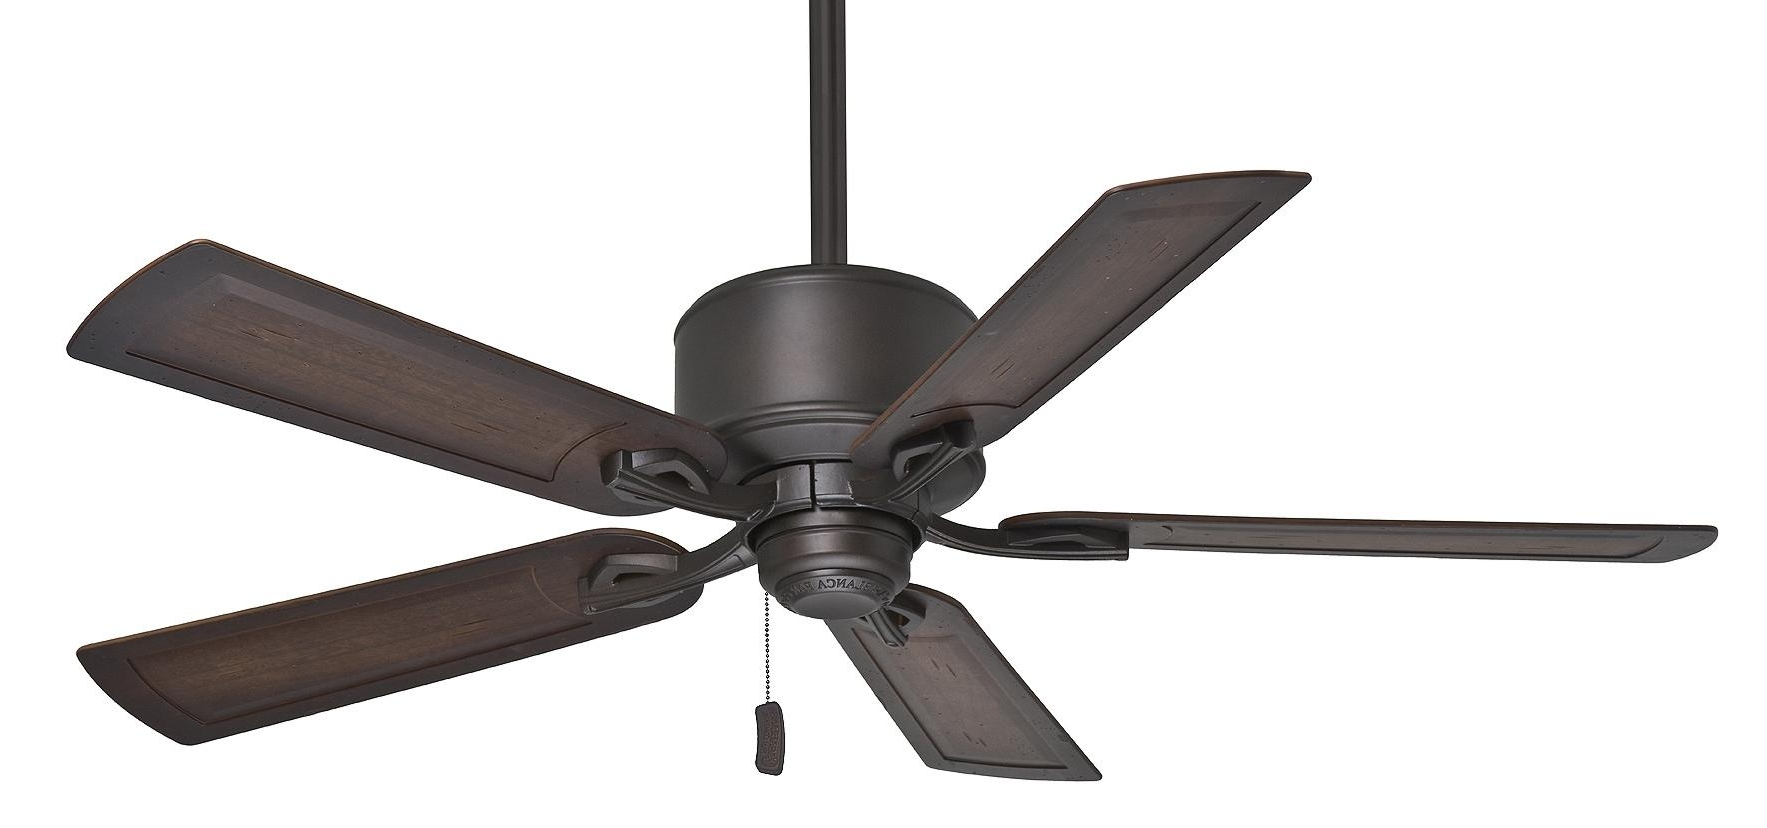 Recent Casablanca Outdoor Ceiling Fans With Lights Pertaining To Ceiling: Astounding Casablanca Ceiling Fans Casablanca Ceiling Fan (View 3 of 20)